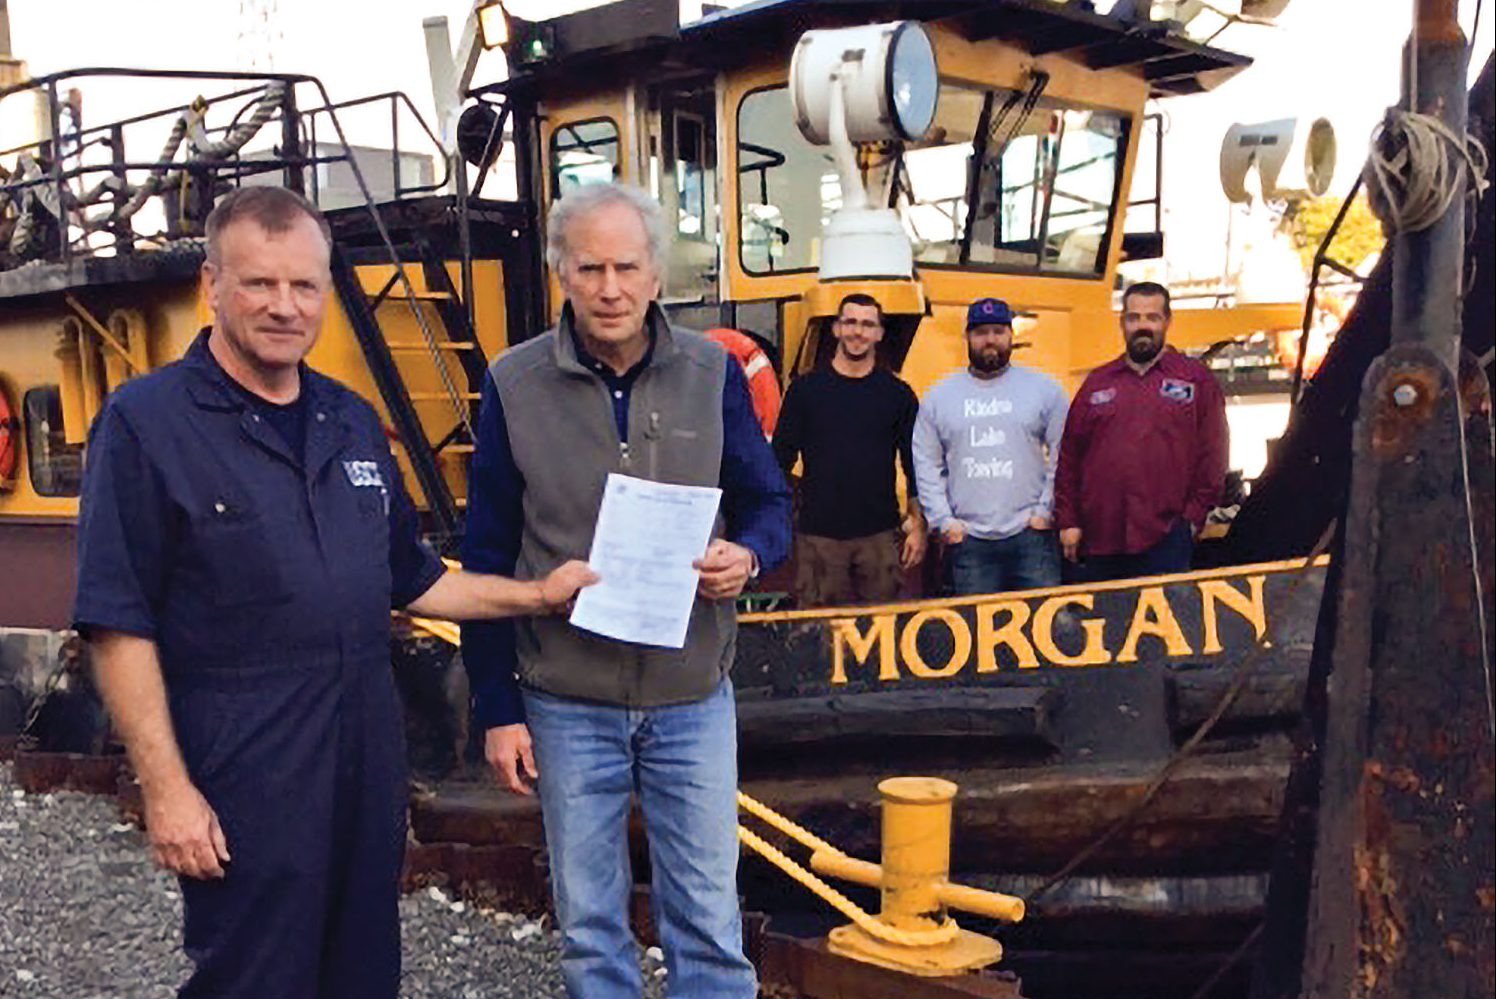 Jeff Carie, Marine Safety Unit-Chicago, presents John Kindra, president of Kindra Lake Towing LP, with its first Certificate of Inspection for the mv. Morgan as the vessel's crew looks on. Crew members include Nijaz Jahovic, deckhand; Capt. Mike Hunter; and Ken Horn, deck engineer. (Photo courtesy of Kindra Lake Towing)